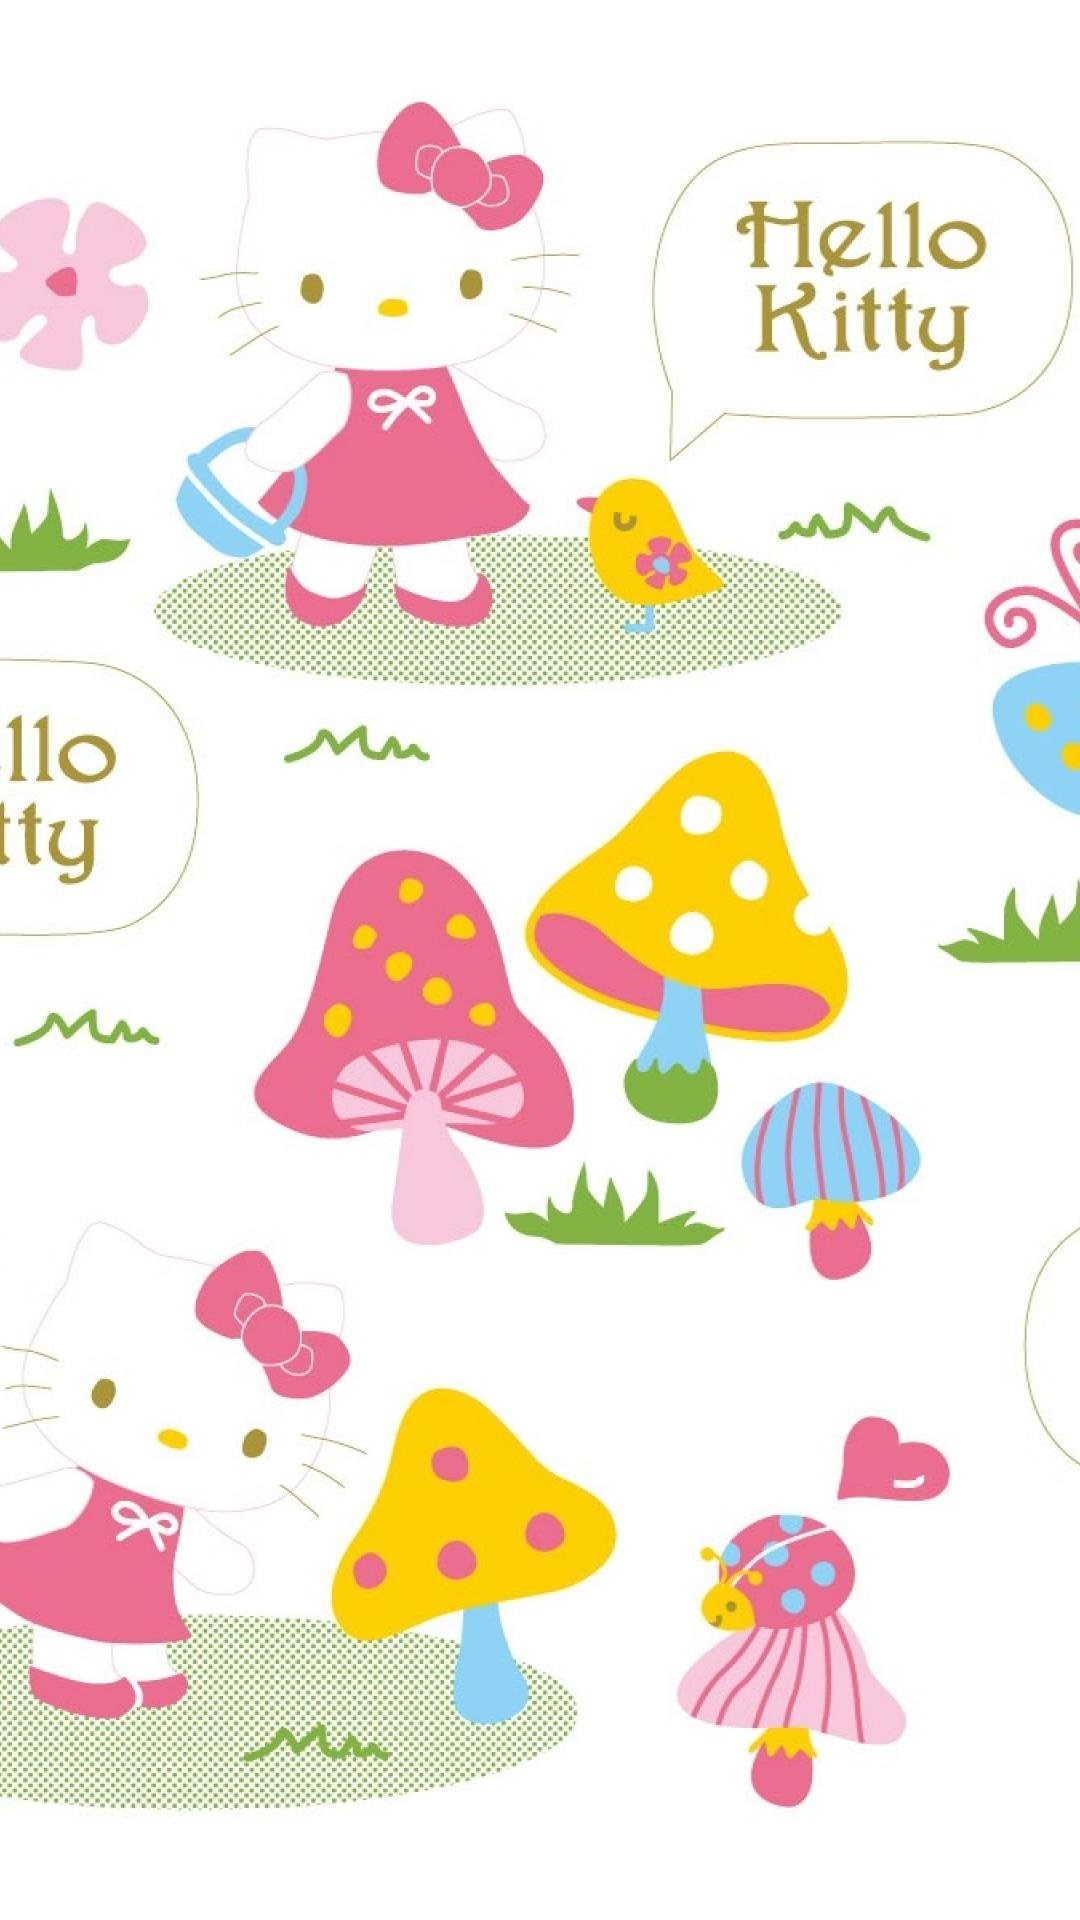 Hello Kitty Wallpapers For Android Androidwalls Org Desktop